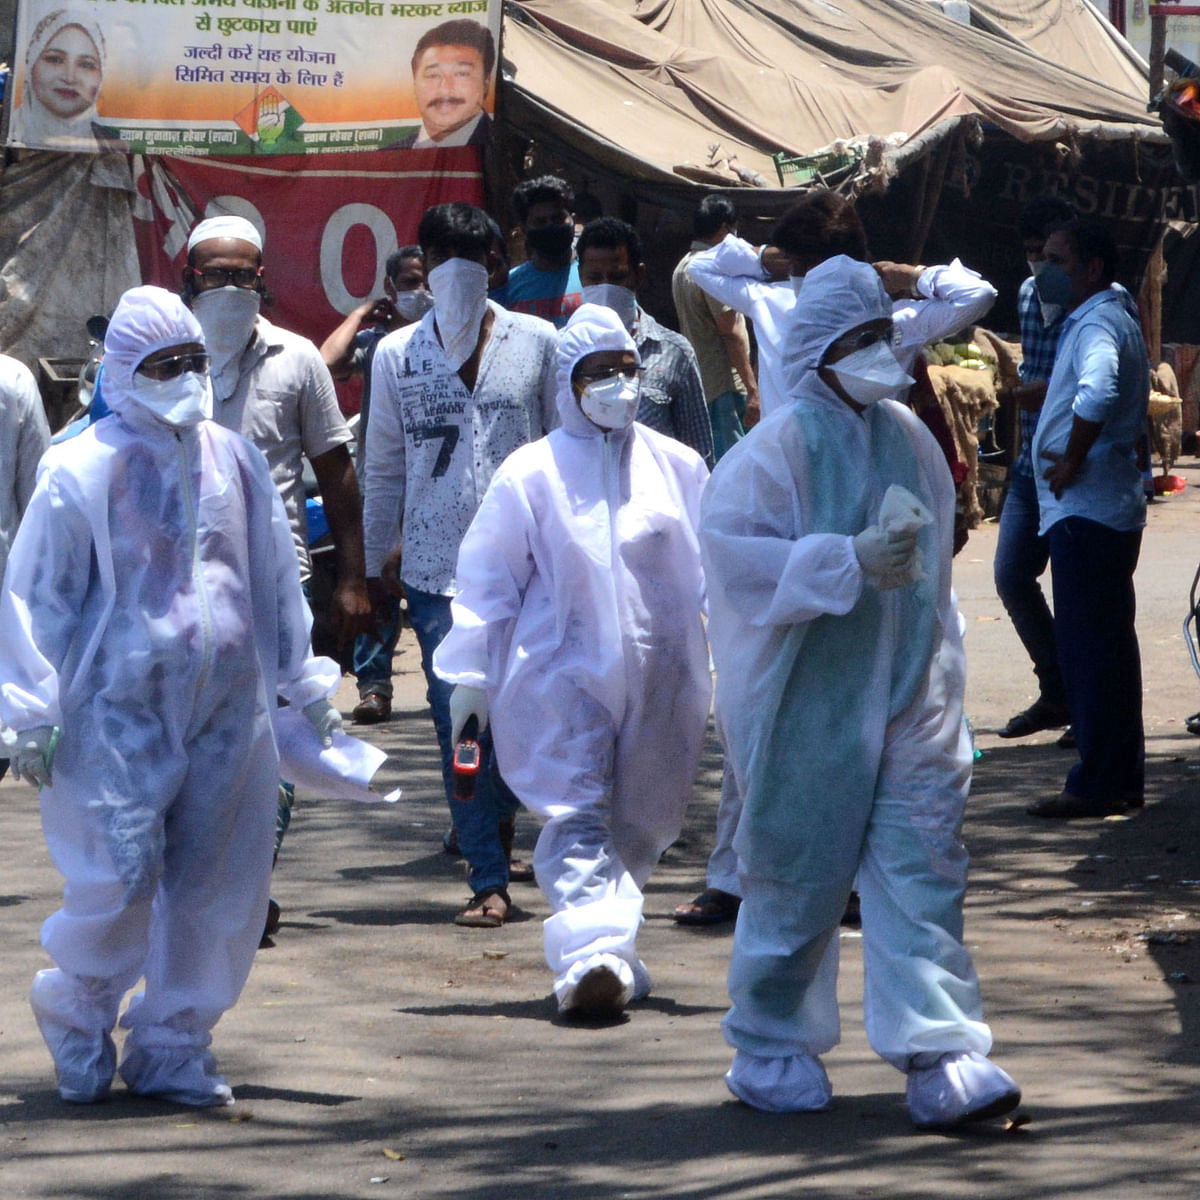 Coronavirus cases jump from 2 to 3 lakh in 10 days even as India records worst daily spike